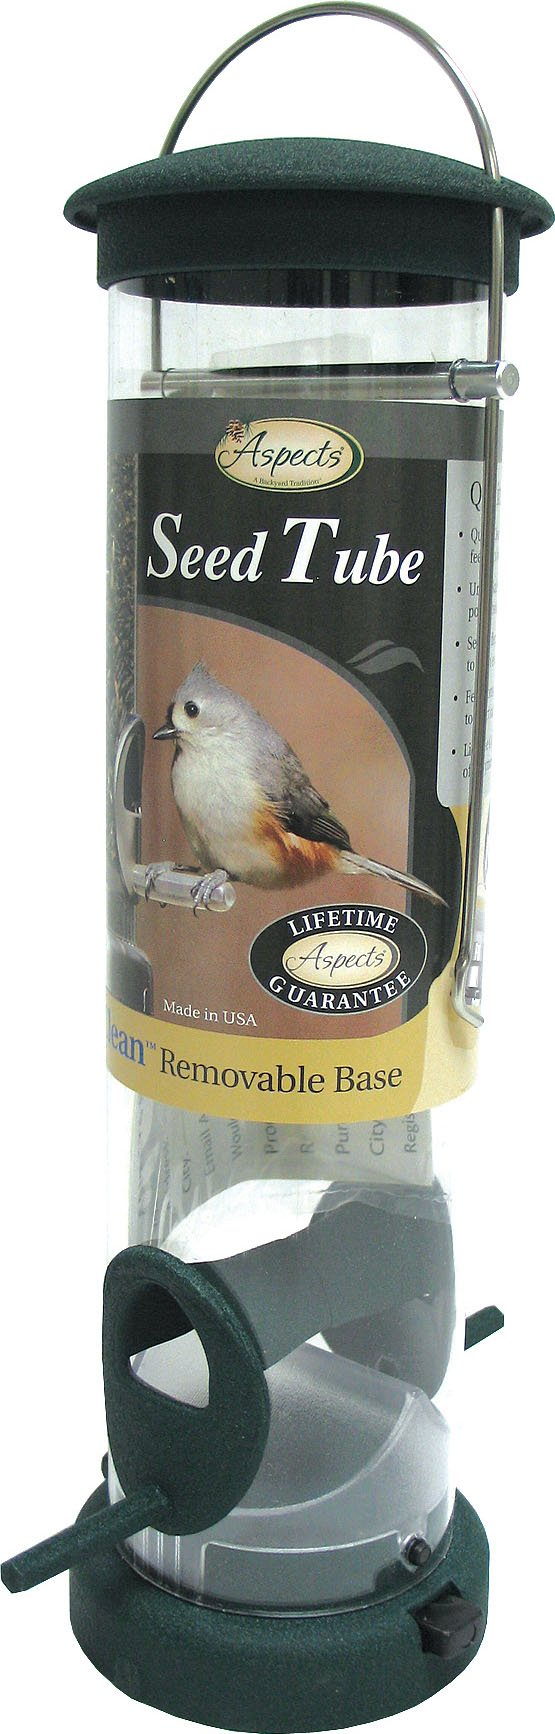 Aspects 425 Quick Clean Seed Tube Feeder, Spruce, Large